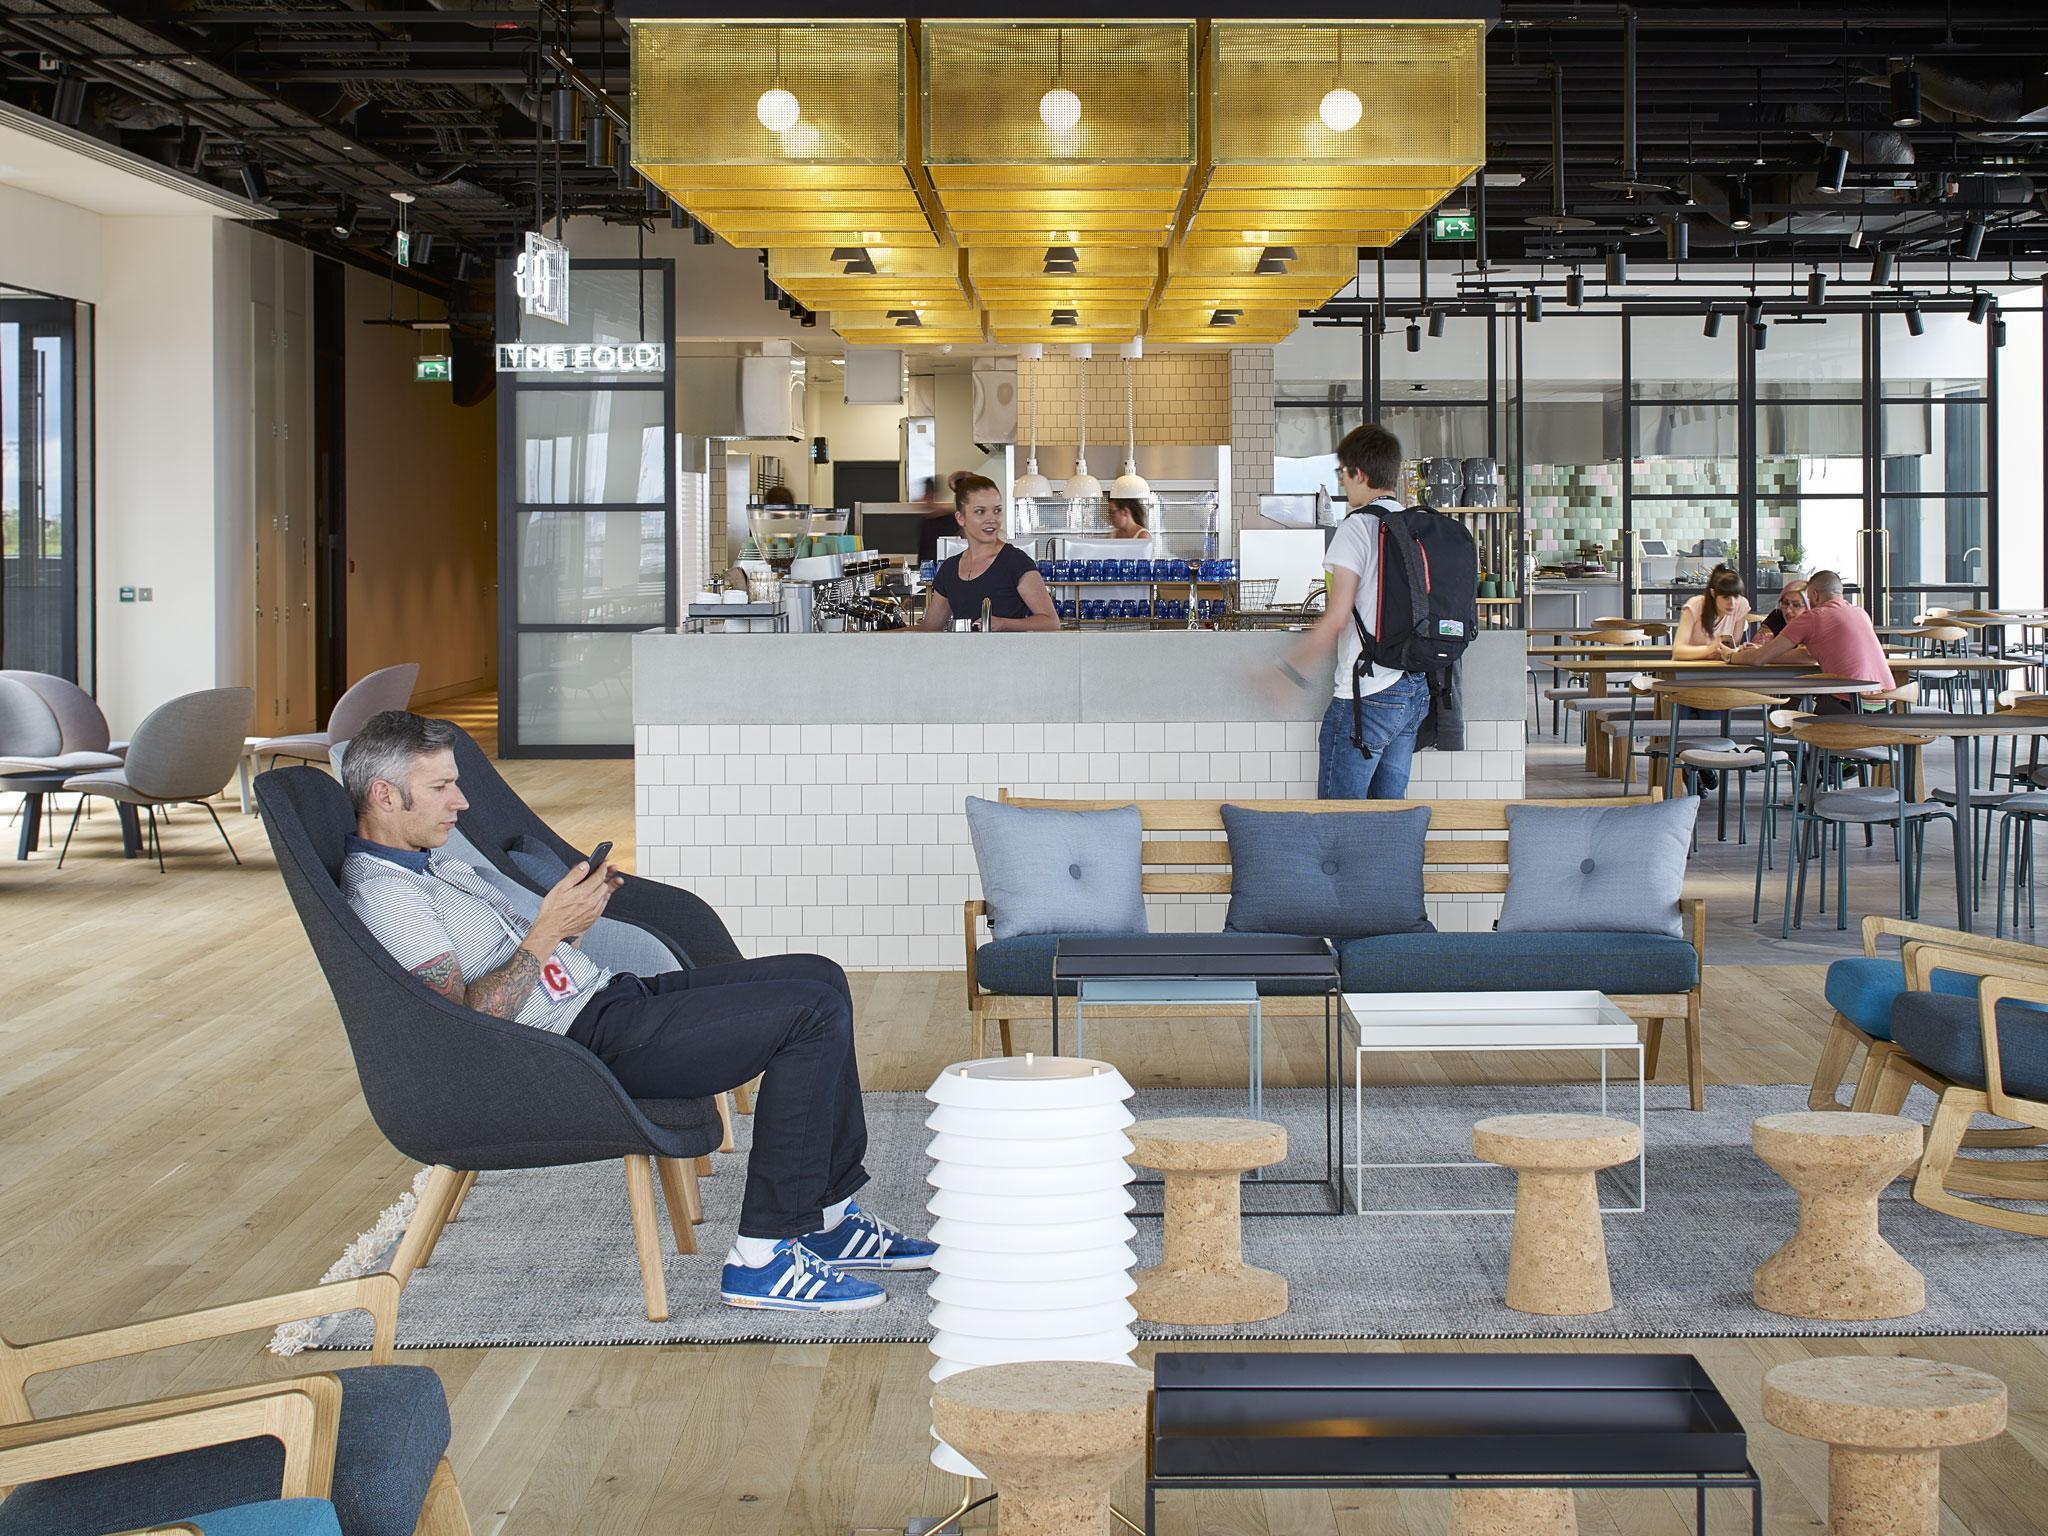 google office in uk. Harry Potter, Nap Pods And Cookery Classes: The First Pictures From Inside Google\u0027s New King\u0027s Cross HQ | Independent Google Office In Uk